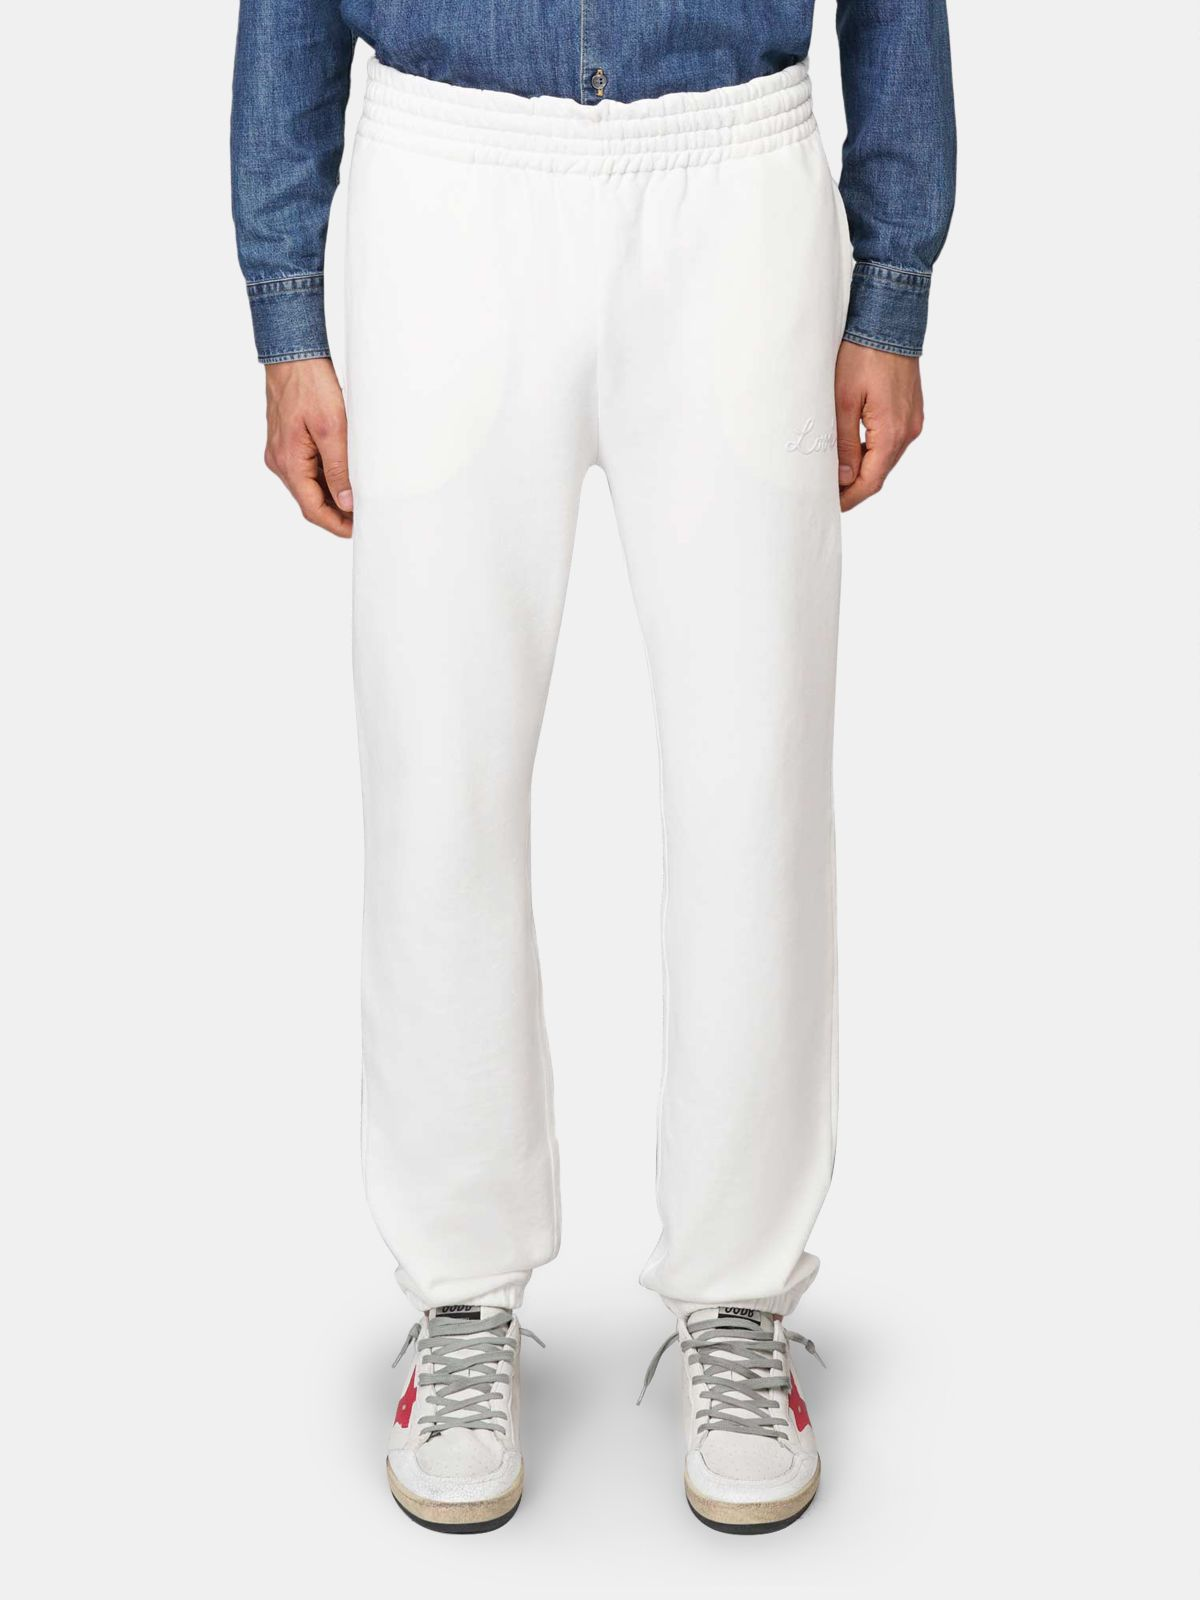 Golden Goose - White Hamm joggers with Love embroidery in